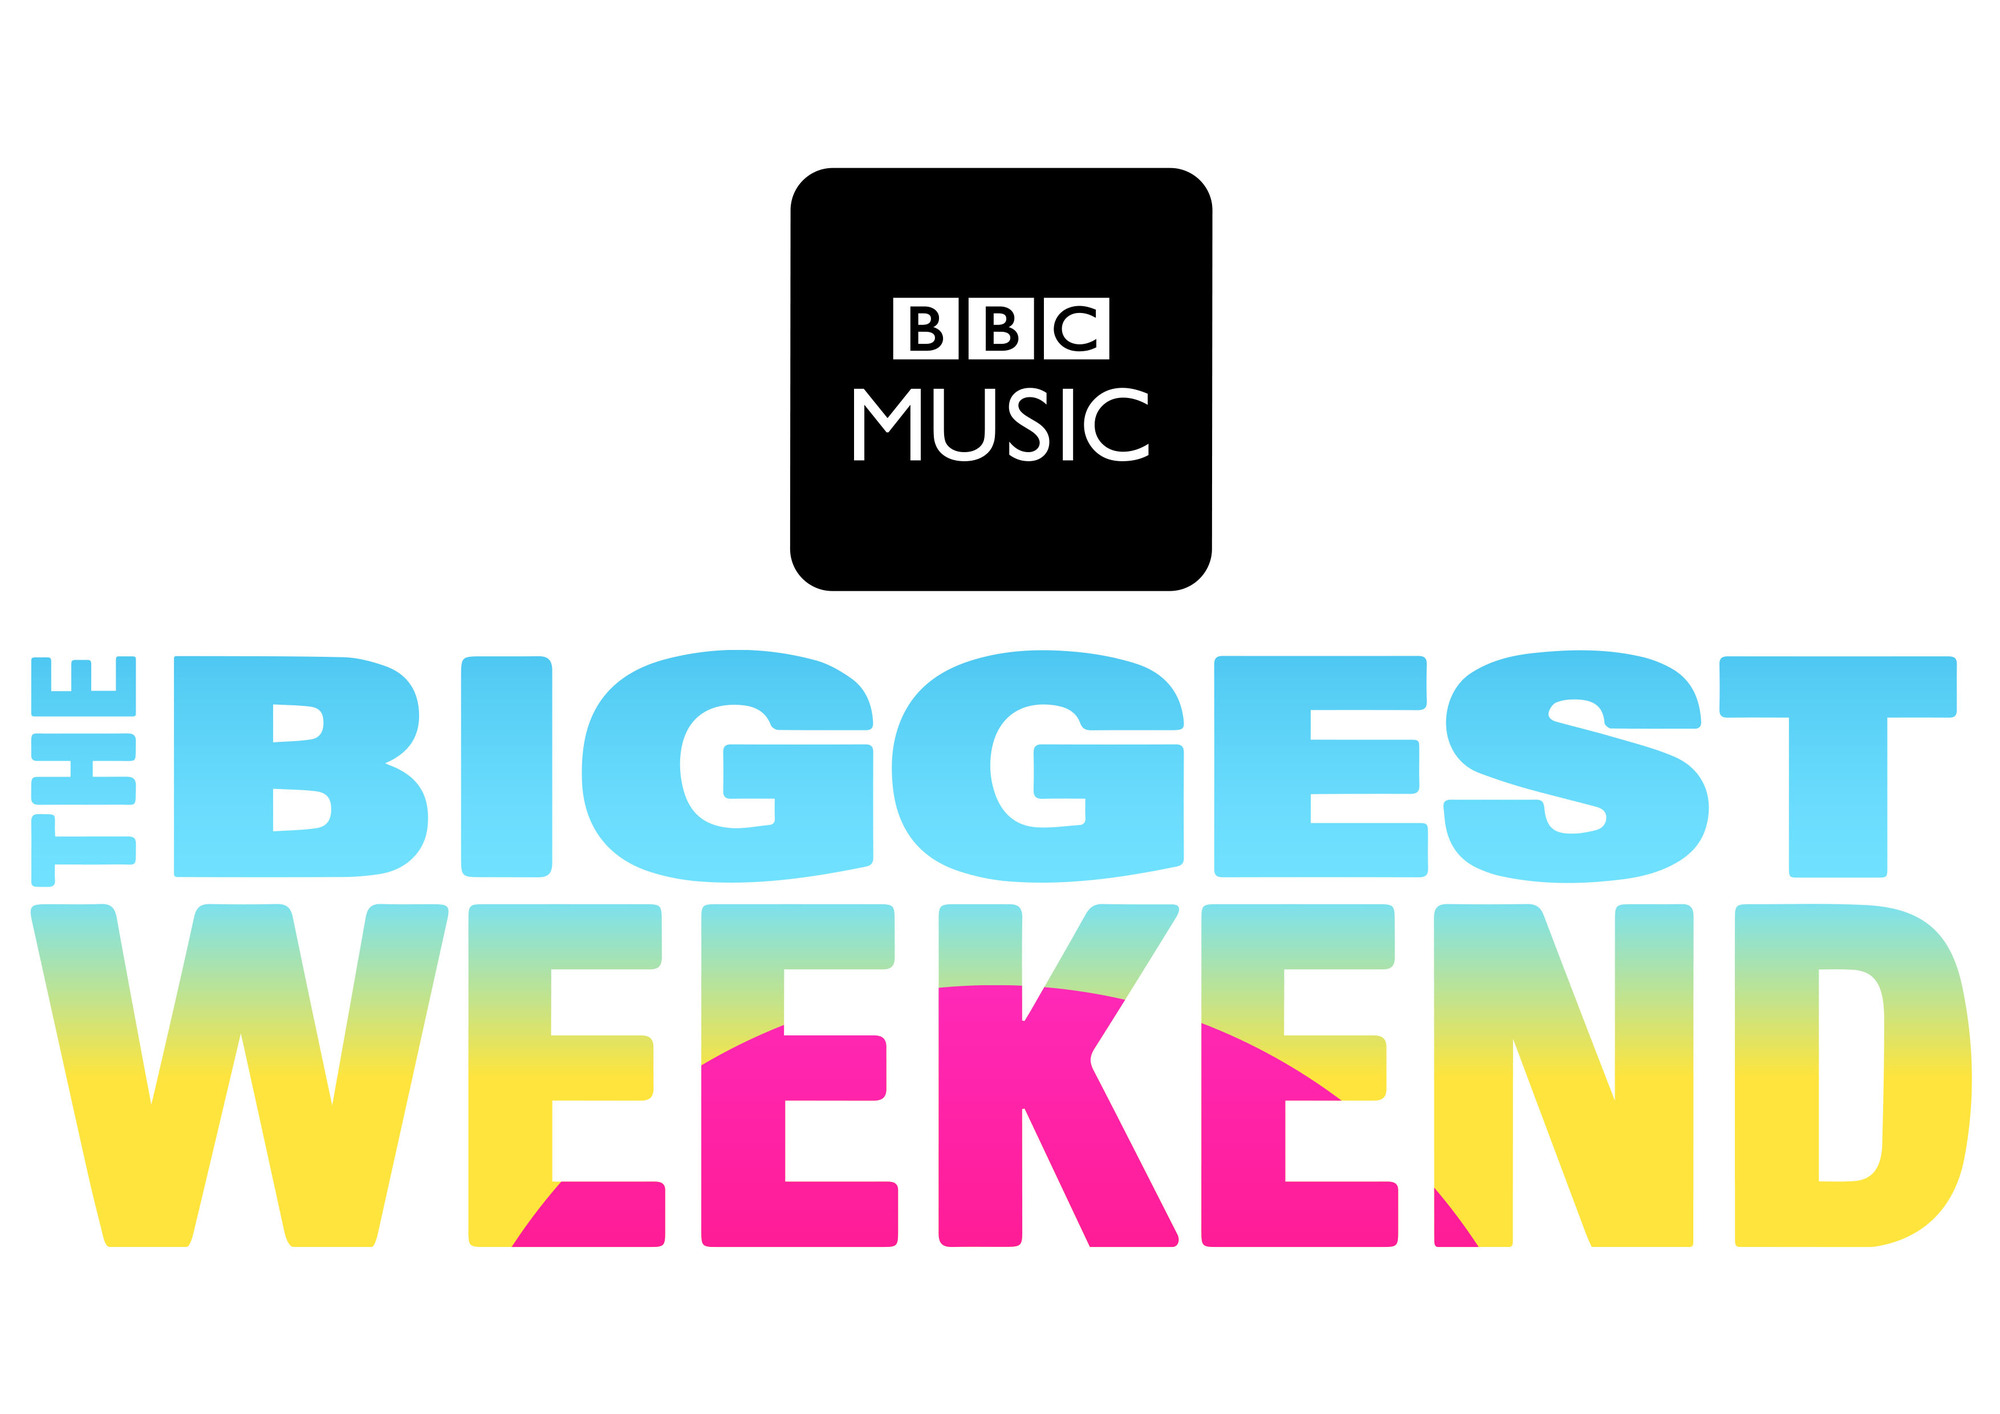 BBC Music's The Biggest Weekend logo